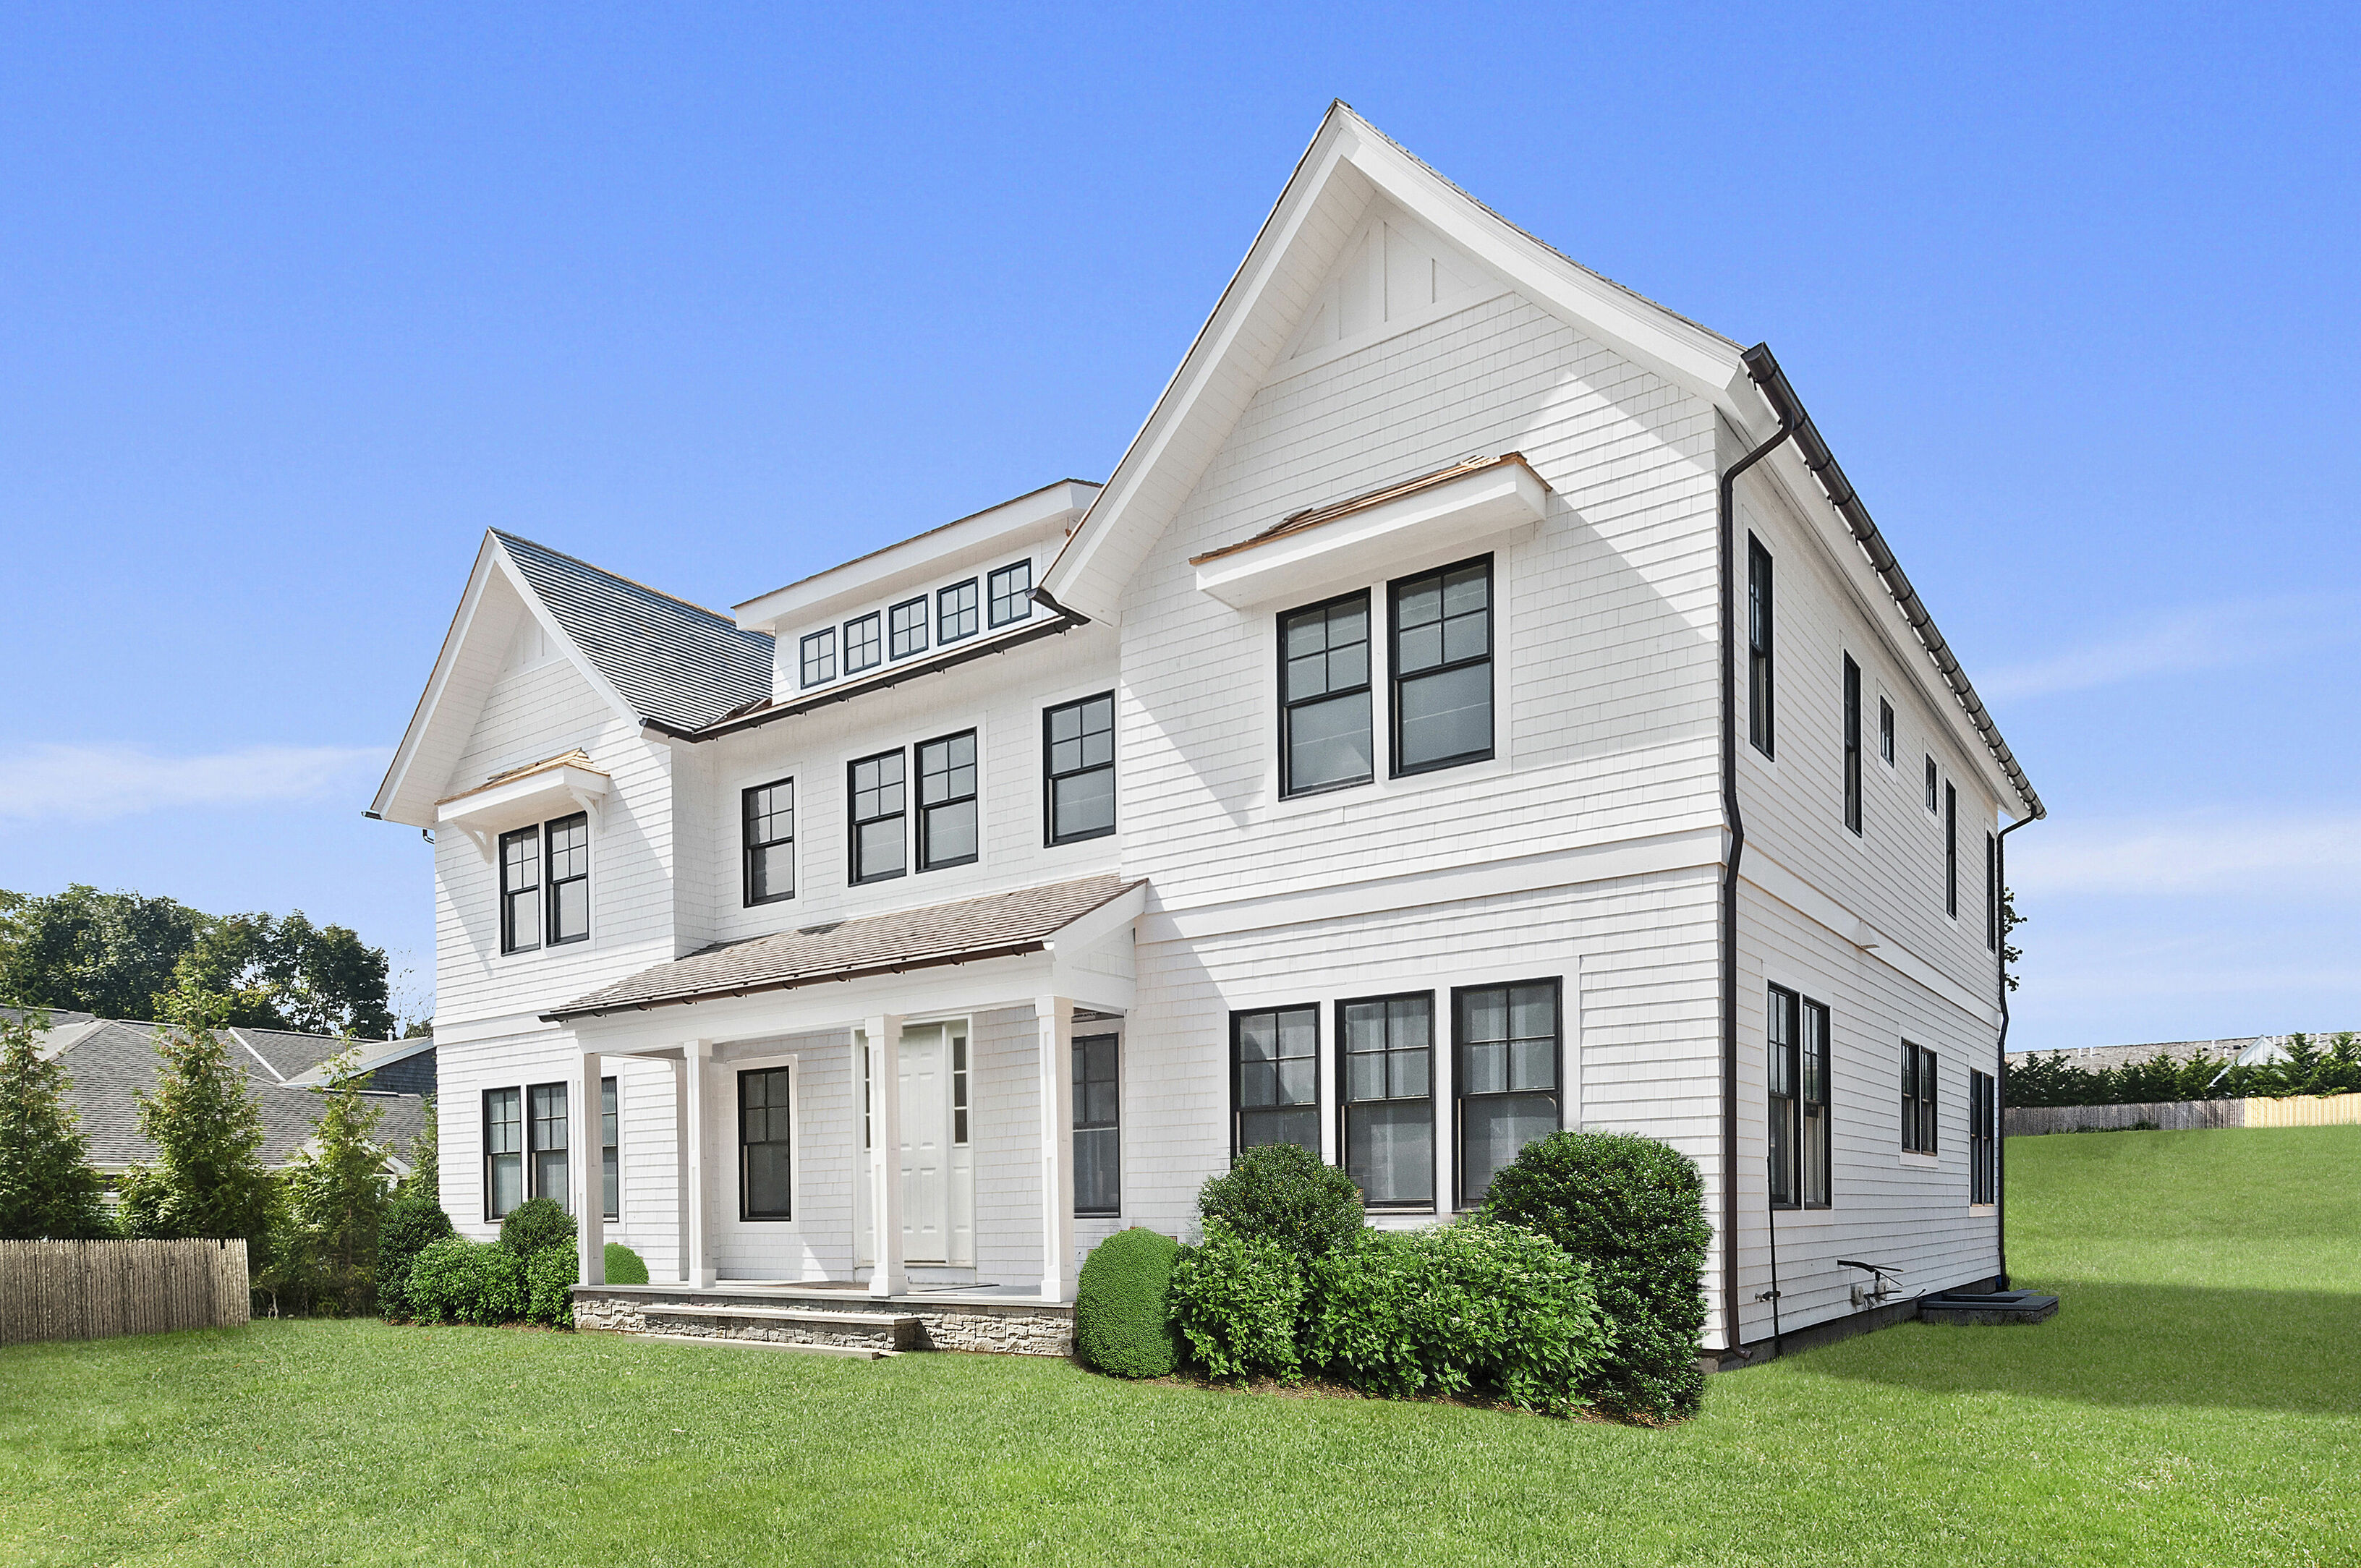 191 Bishops Ln - Southampton Village, New York